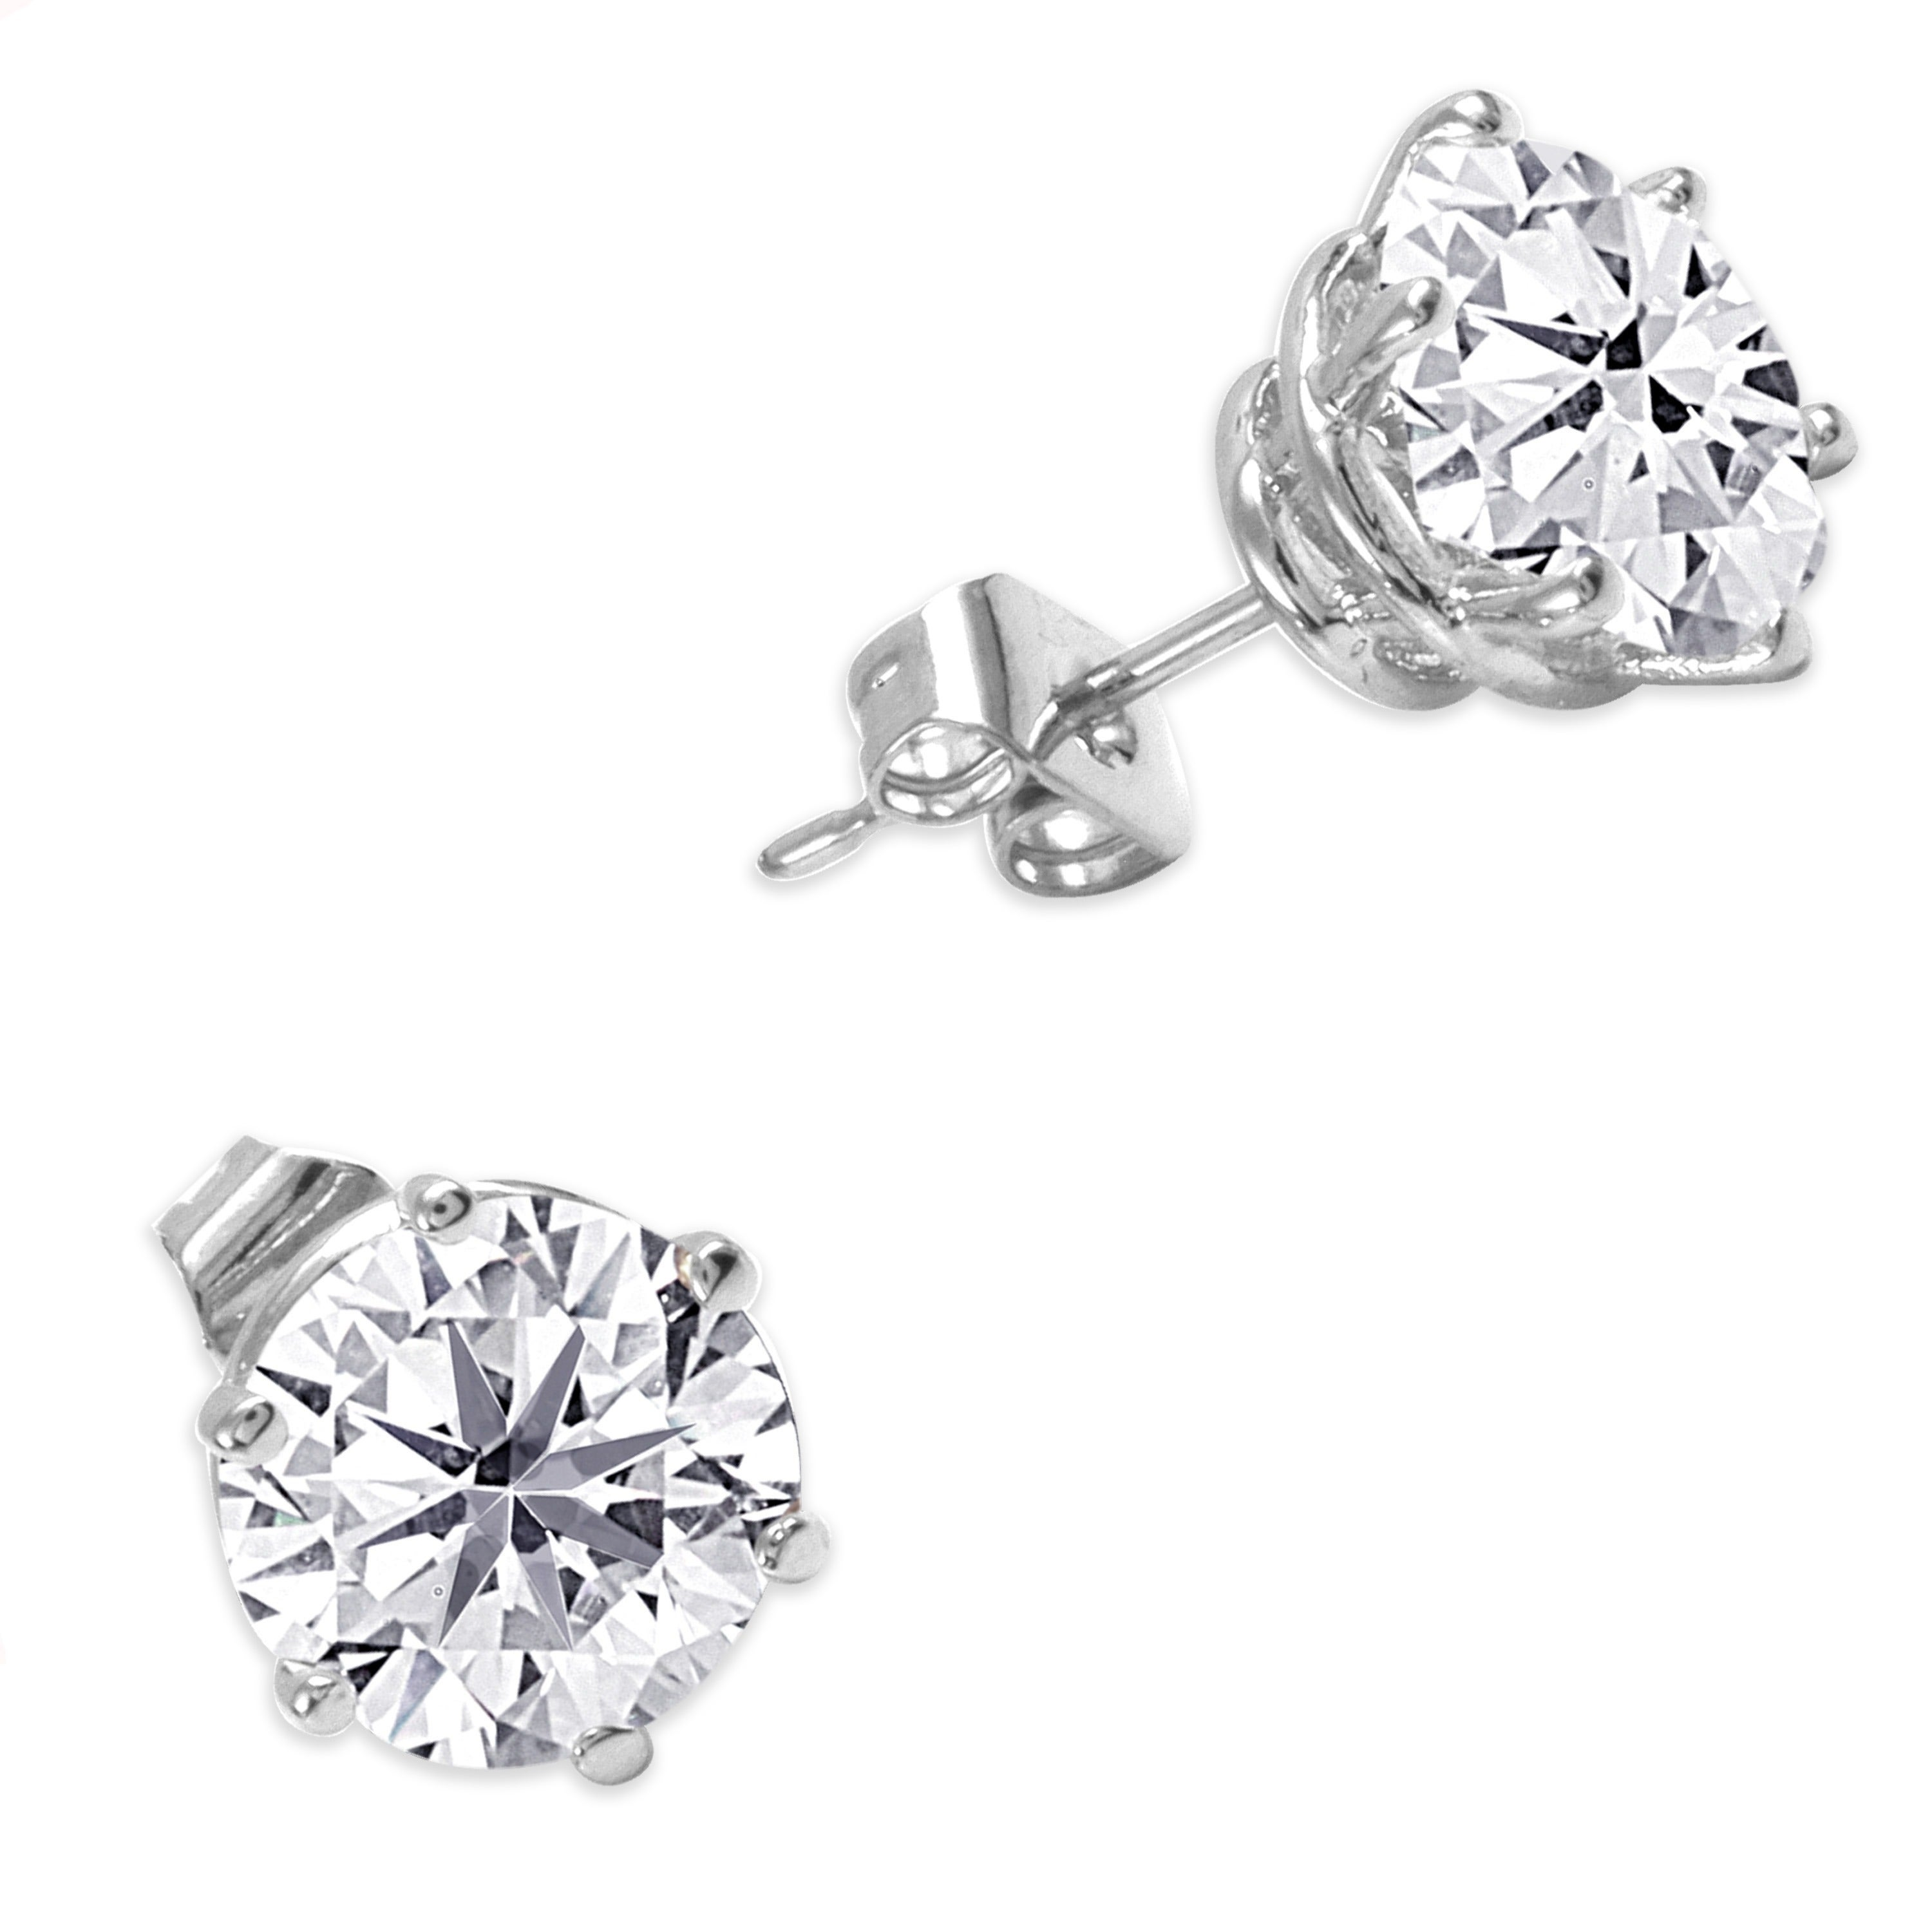 Nexte Jewelry Goldtone Or Silvertone Martini Set Stud Earrings Free Shipping On Orders Over 45 11917206